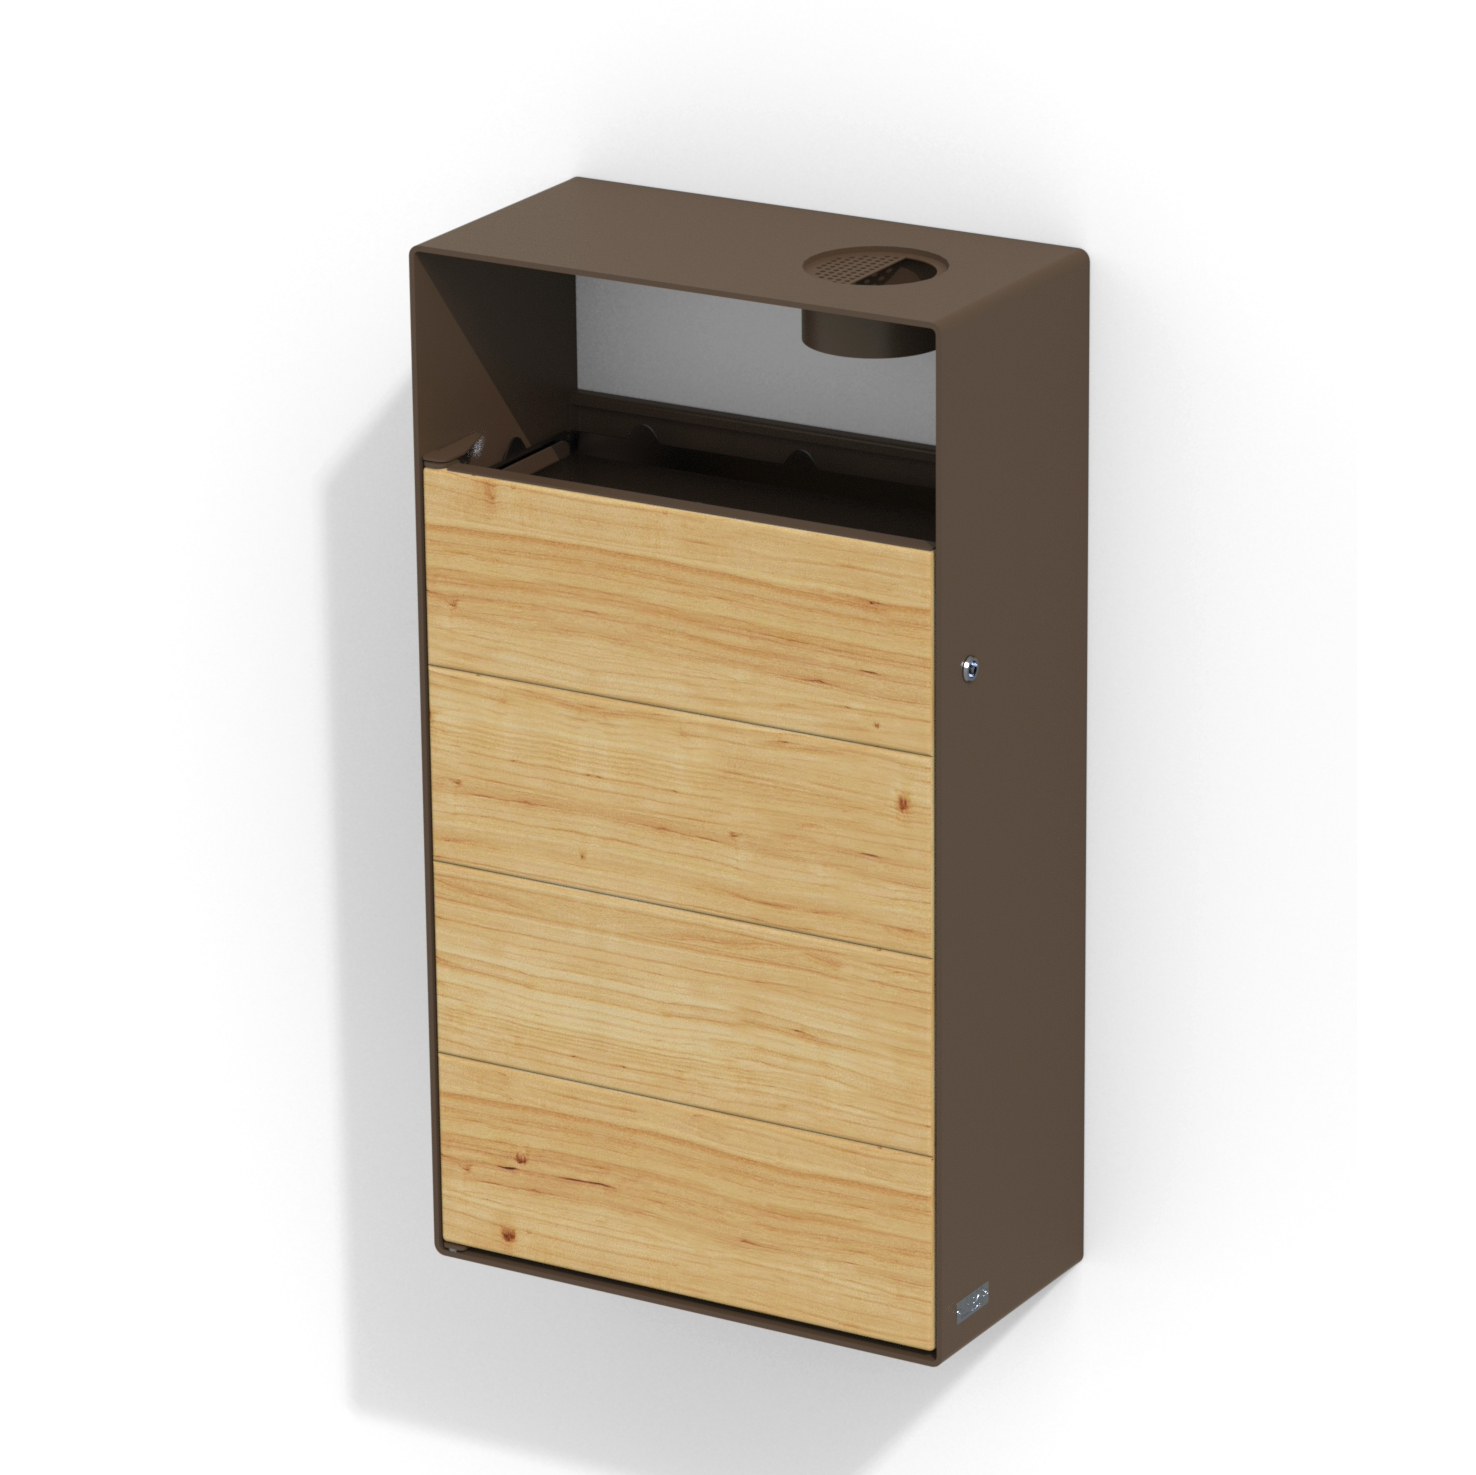 street furniture wall litter bin in wood-steel with ashtray LAB23